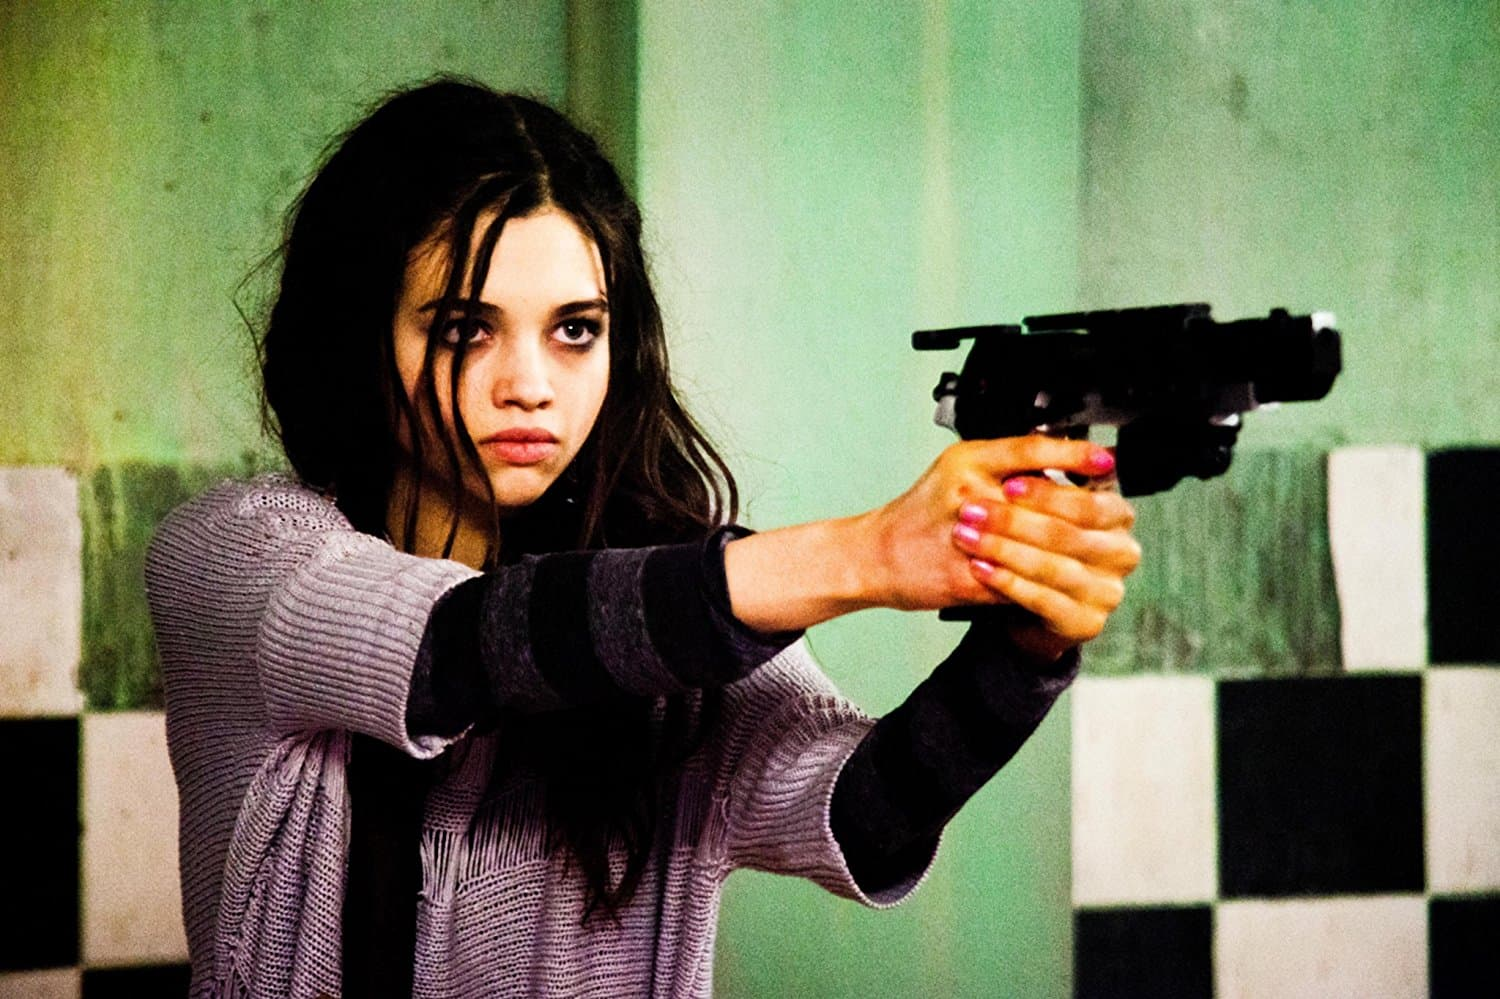 India Eisley as Sawa